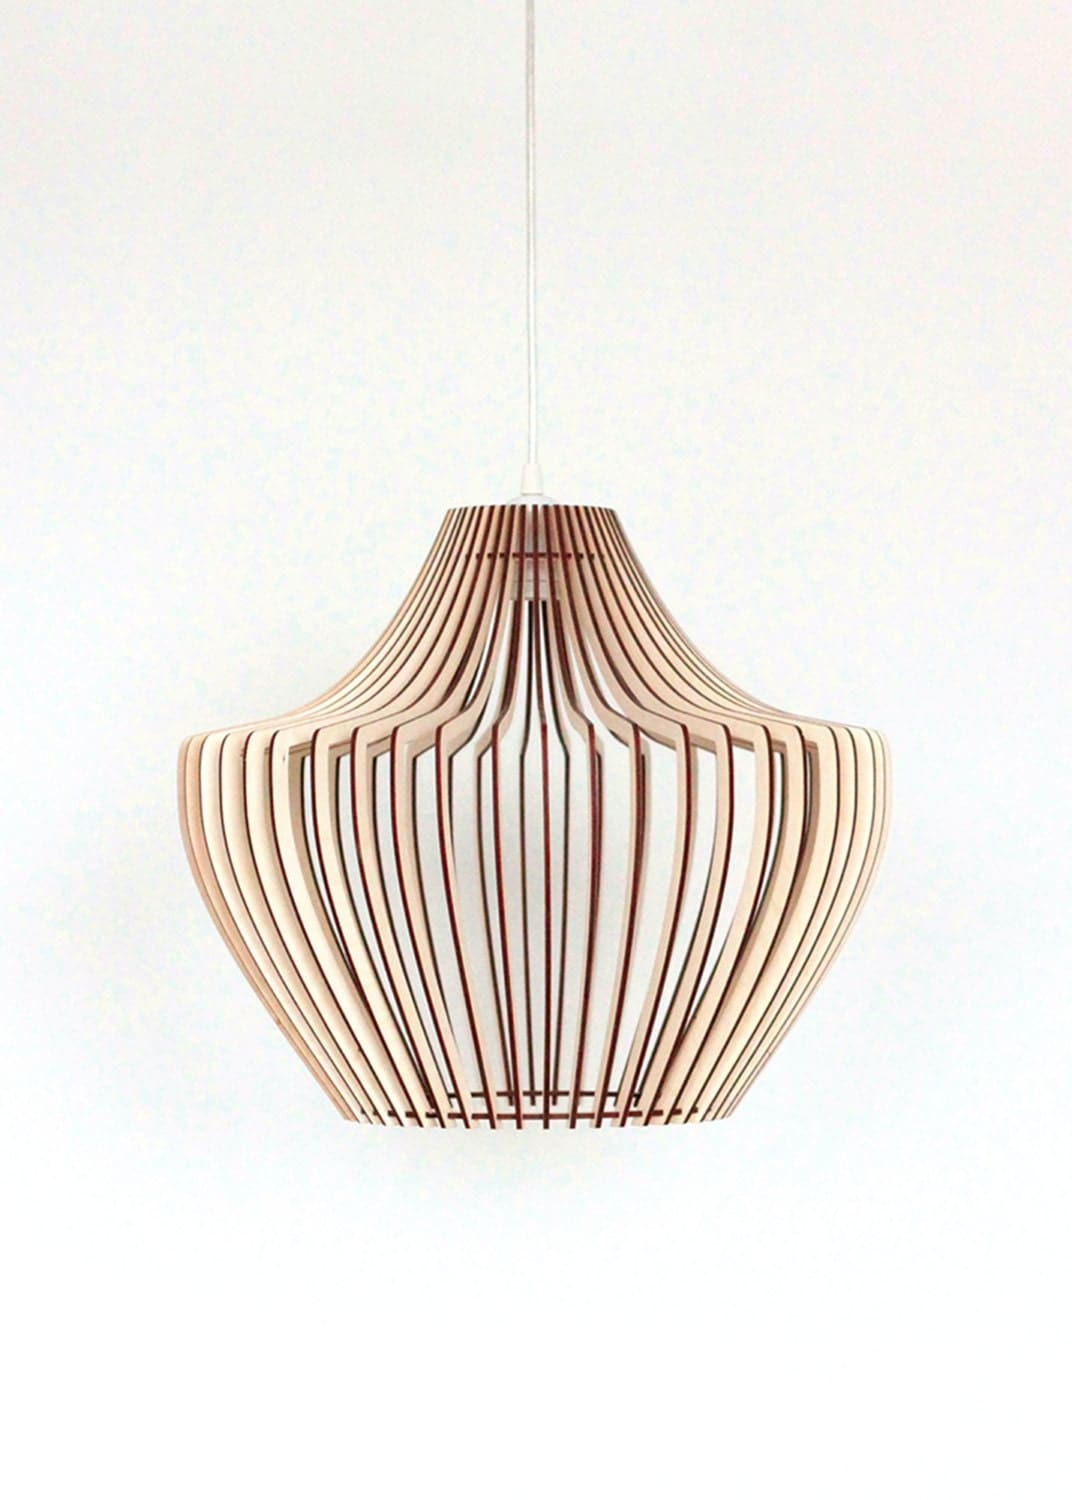 Wood lamp wooden lamp shade hanging lamp pendant for Ceiling lamp wood